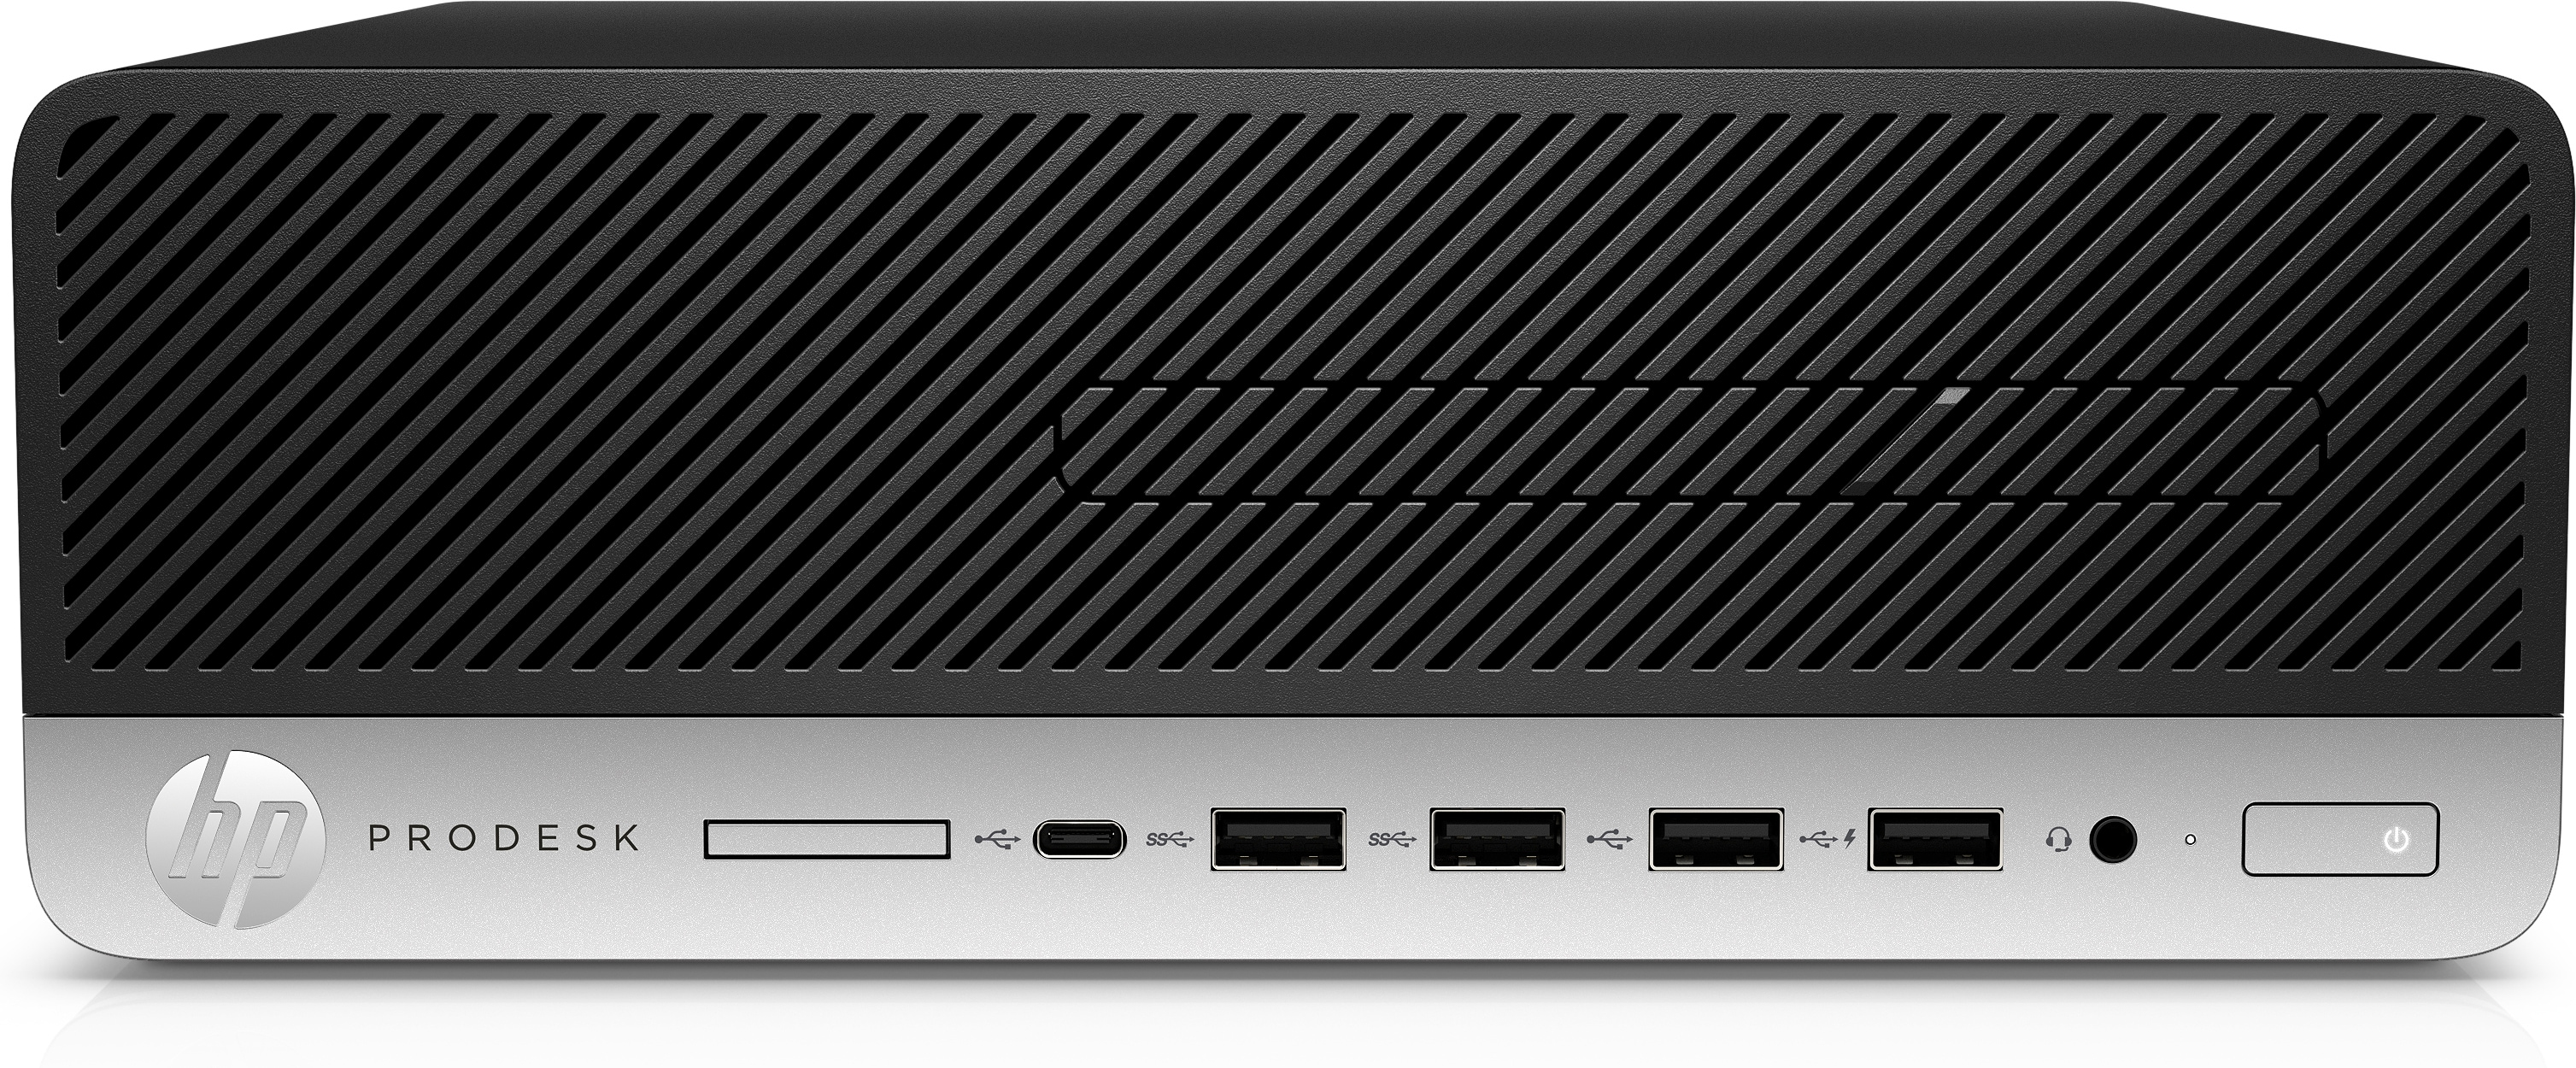 HP ProDesk 405 G4 Small Form Factor PC (9UG17EA)